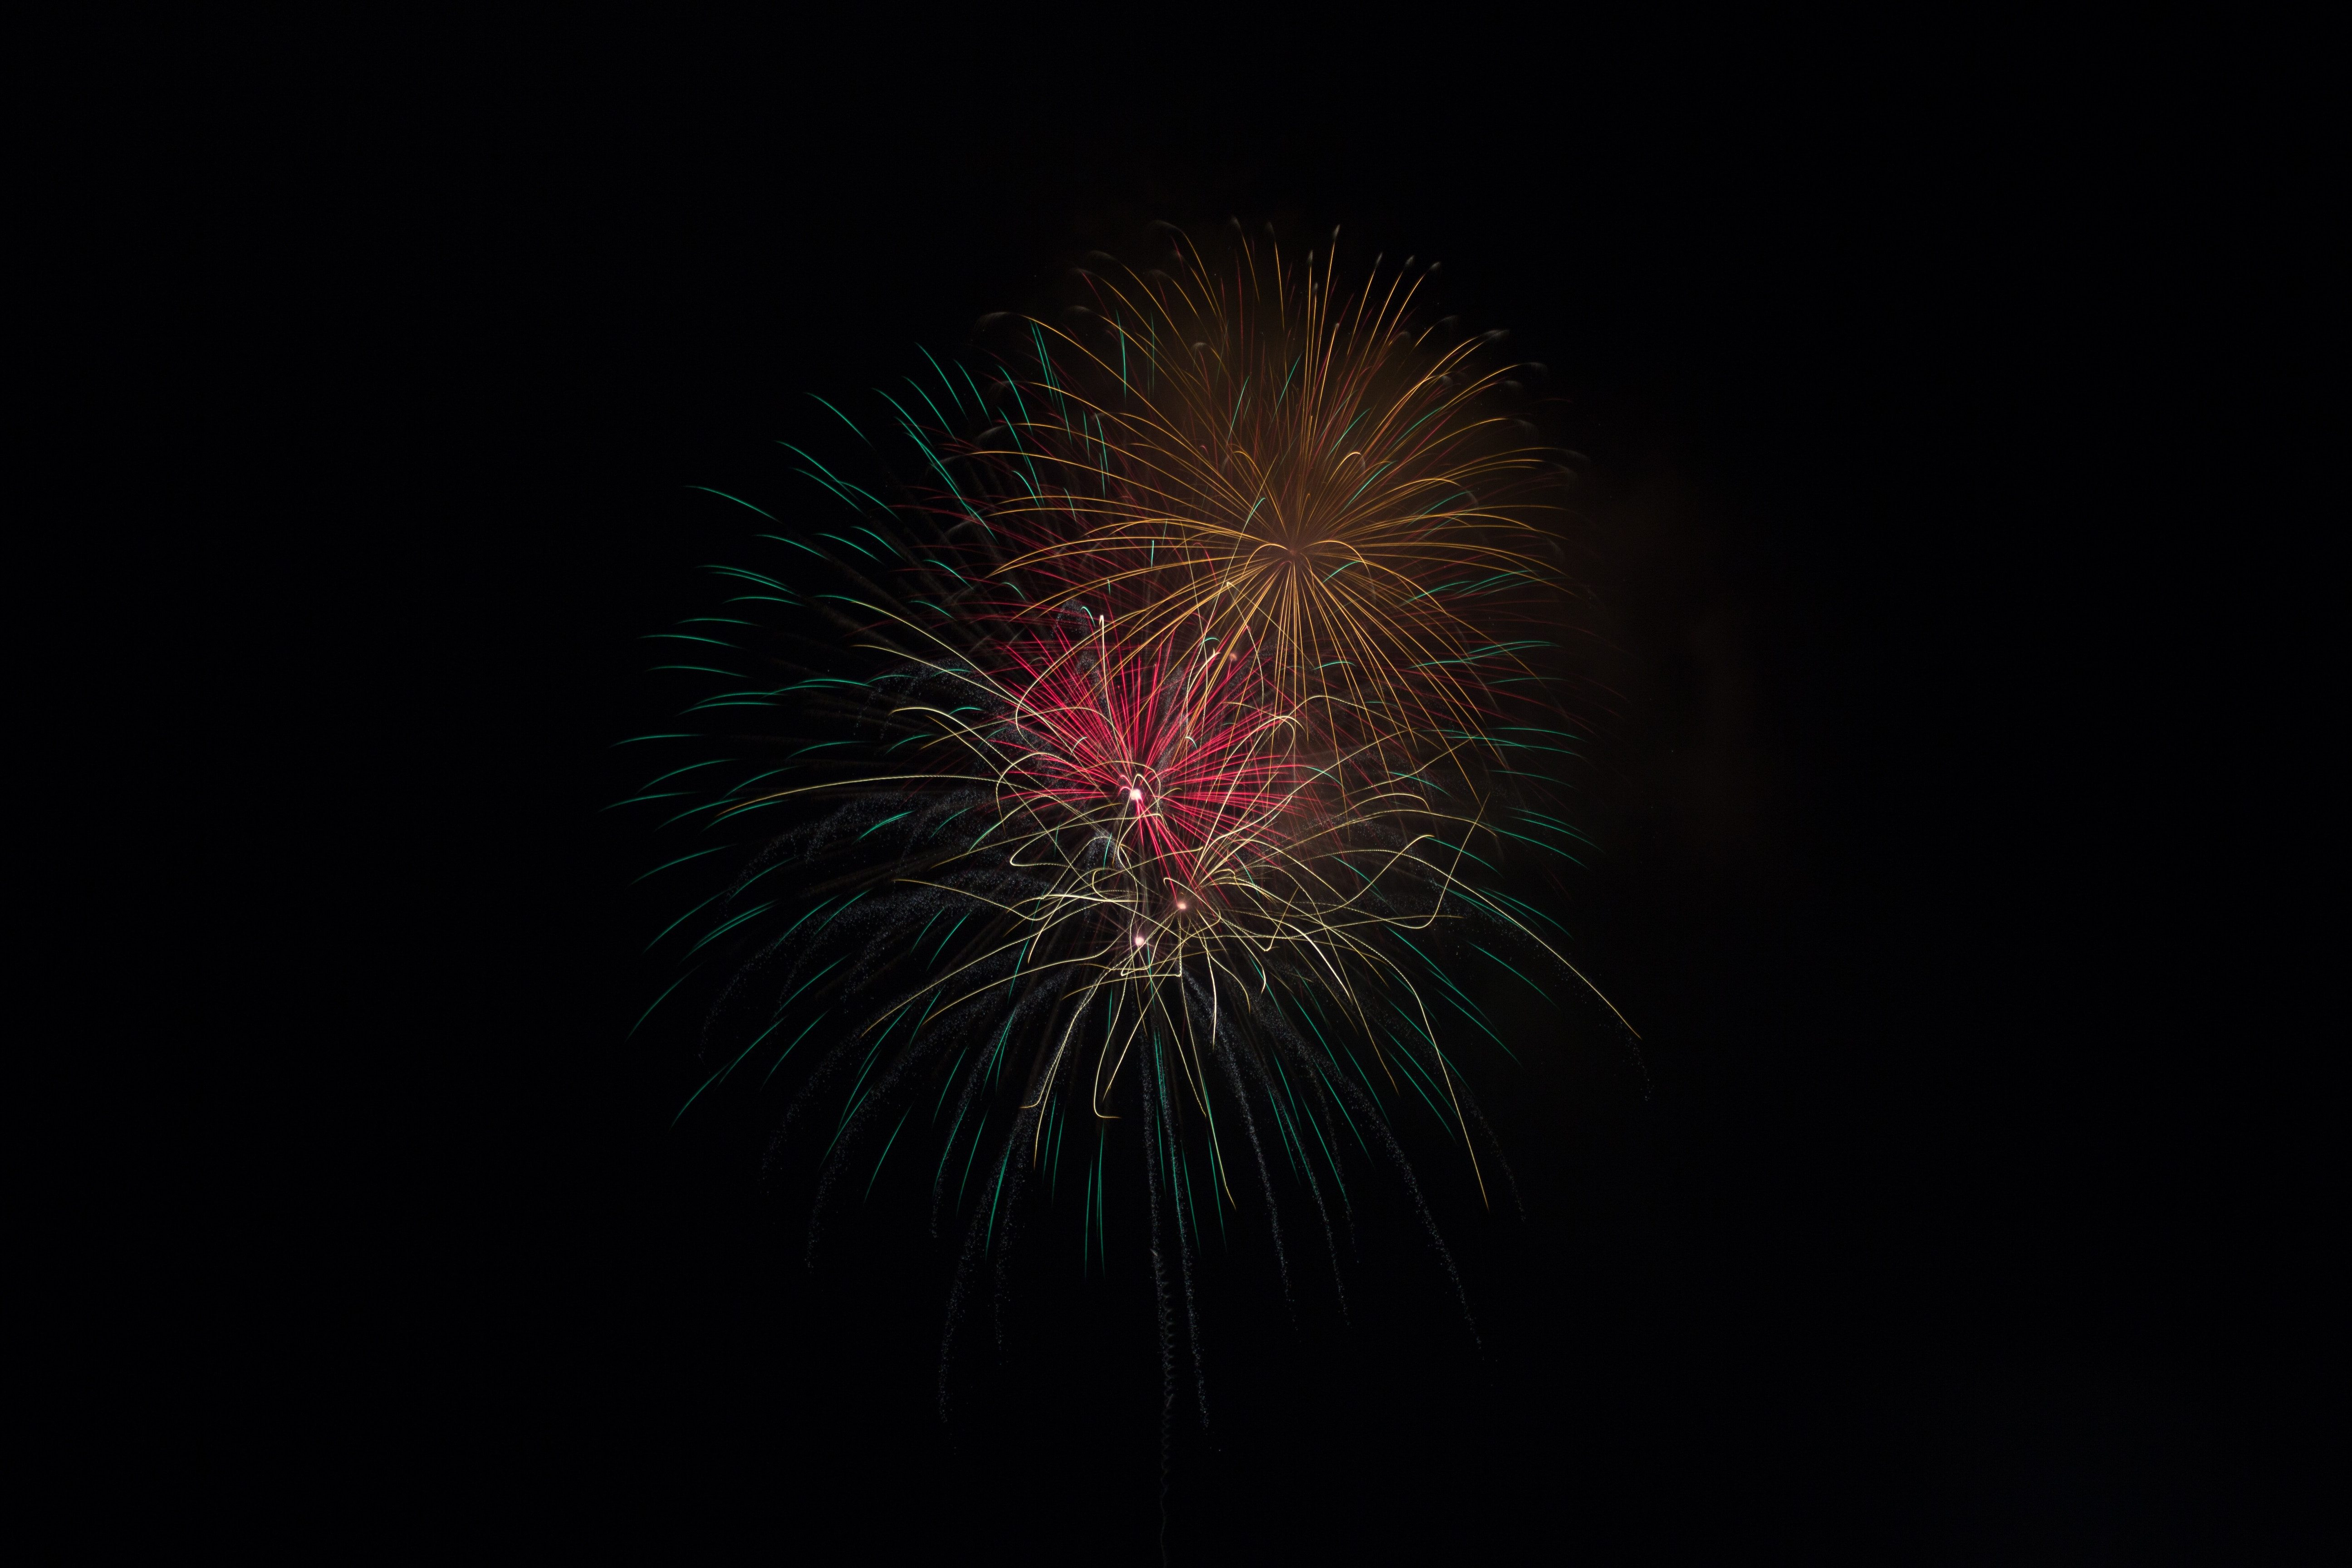 Firework Color Dark Iphone Wallpaper Idrop News